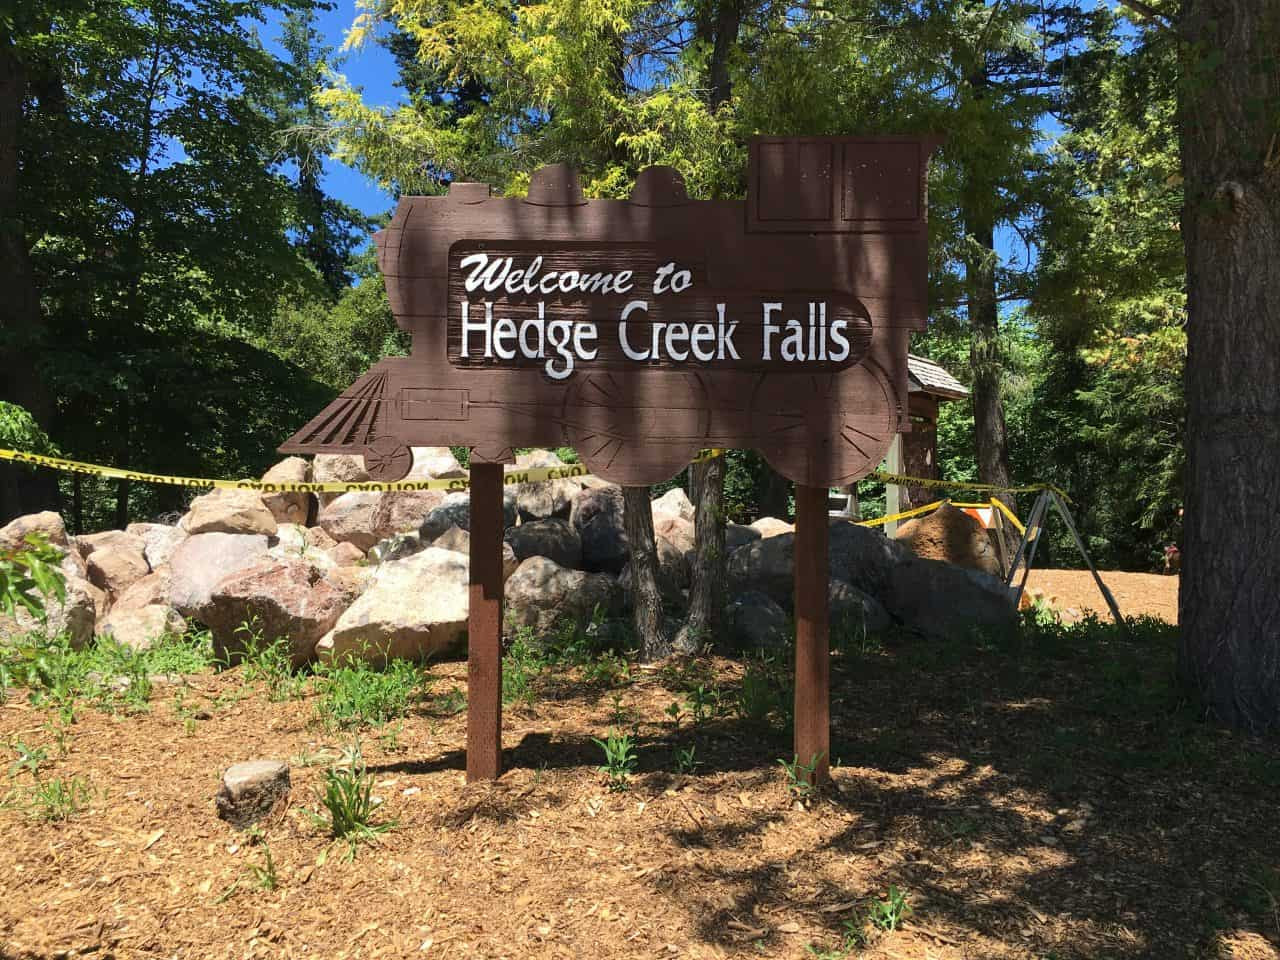 welcome to hedge creek falls sign